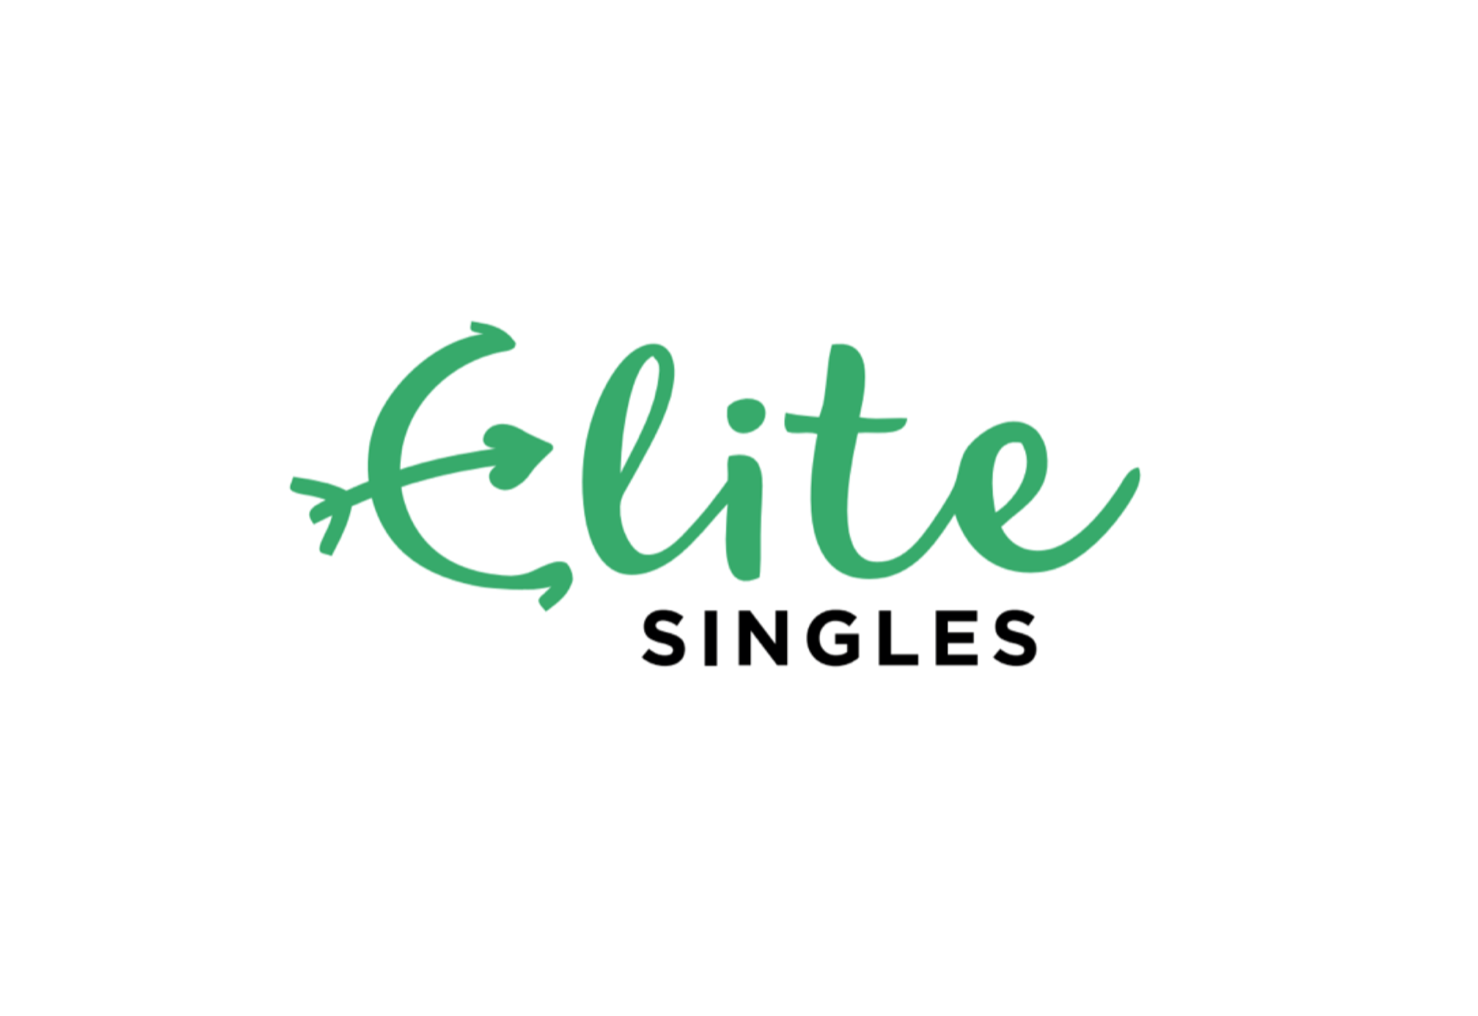 elite singles berlin Reutlingen